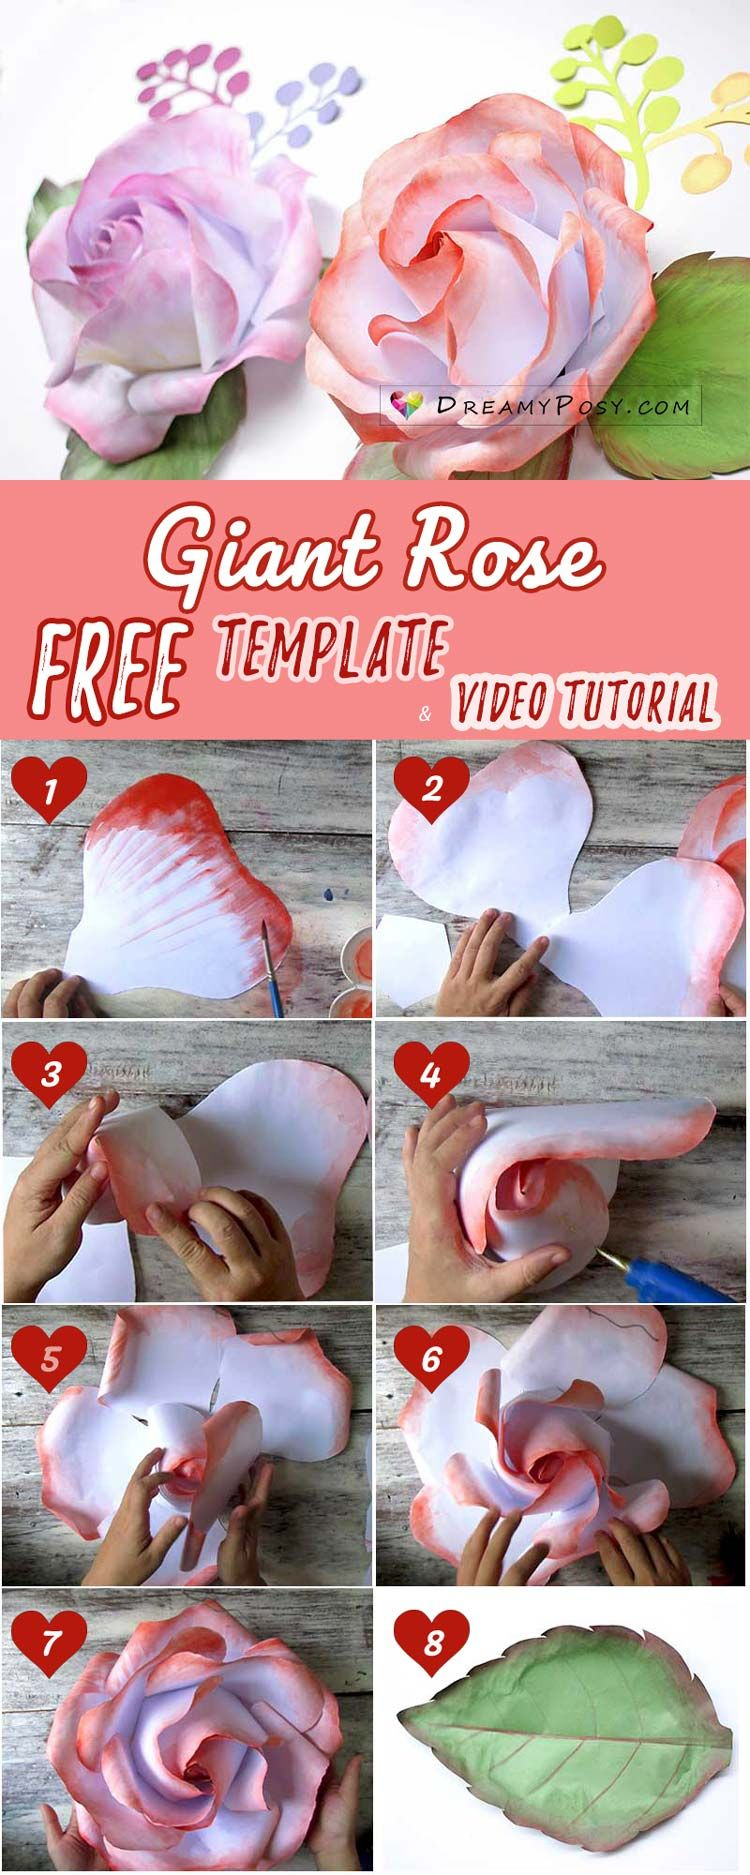 free bridal shower advice card template%0A FREE template and full tutorial to make giant rose for backdrop